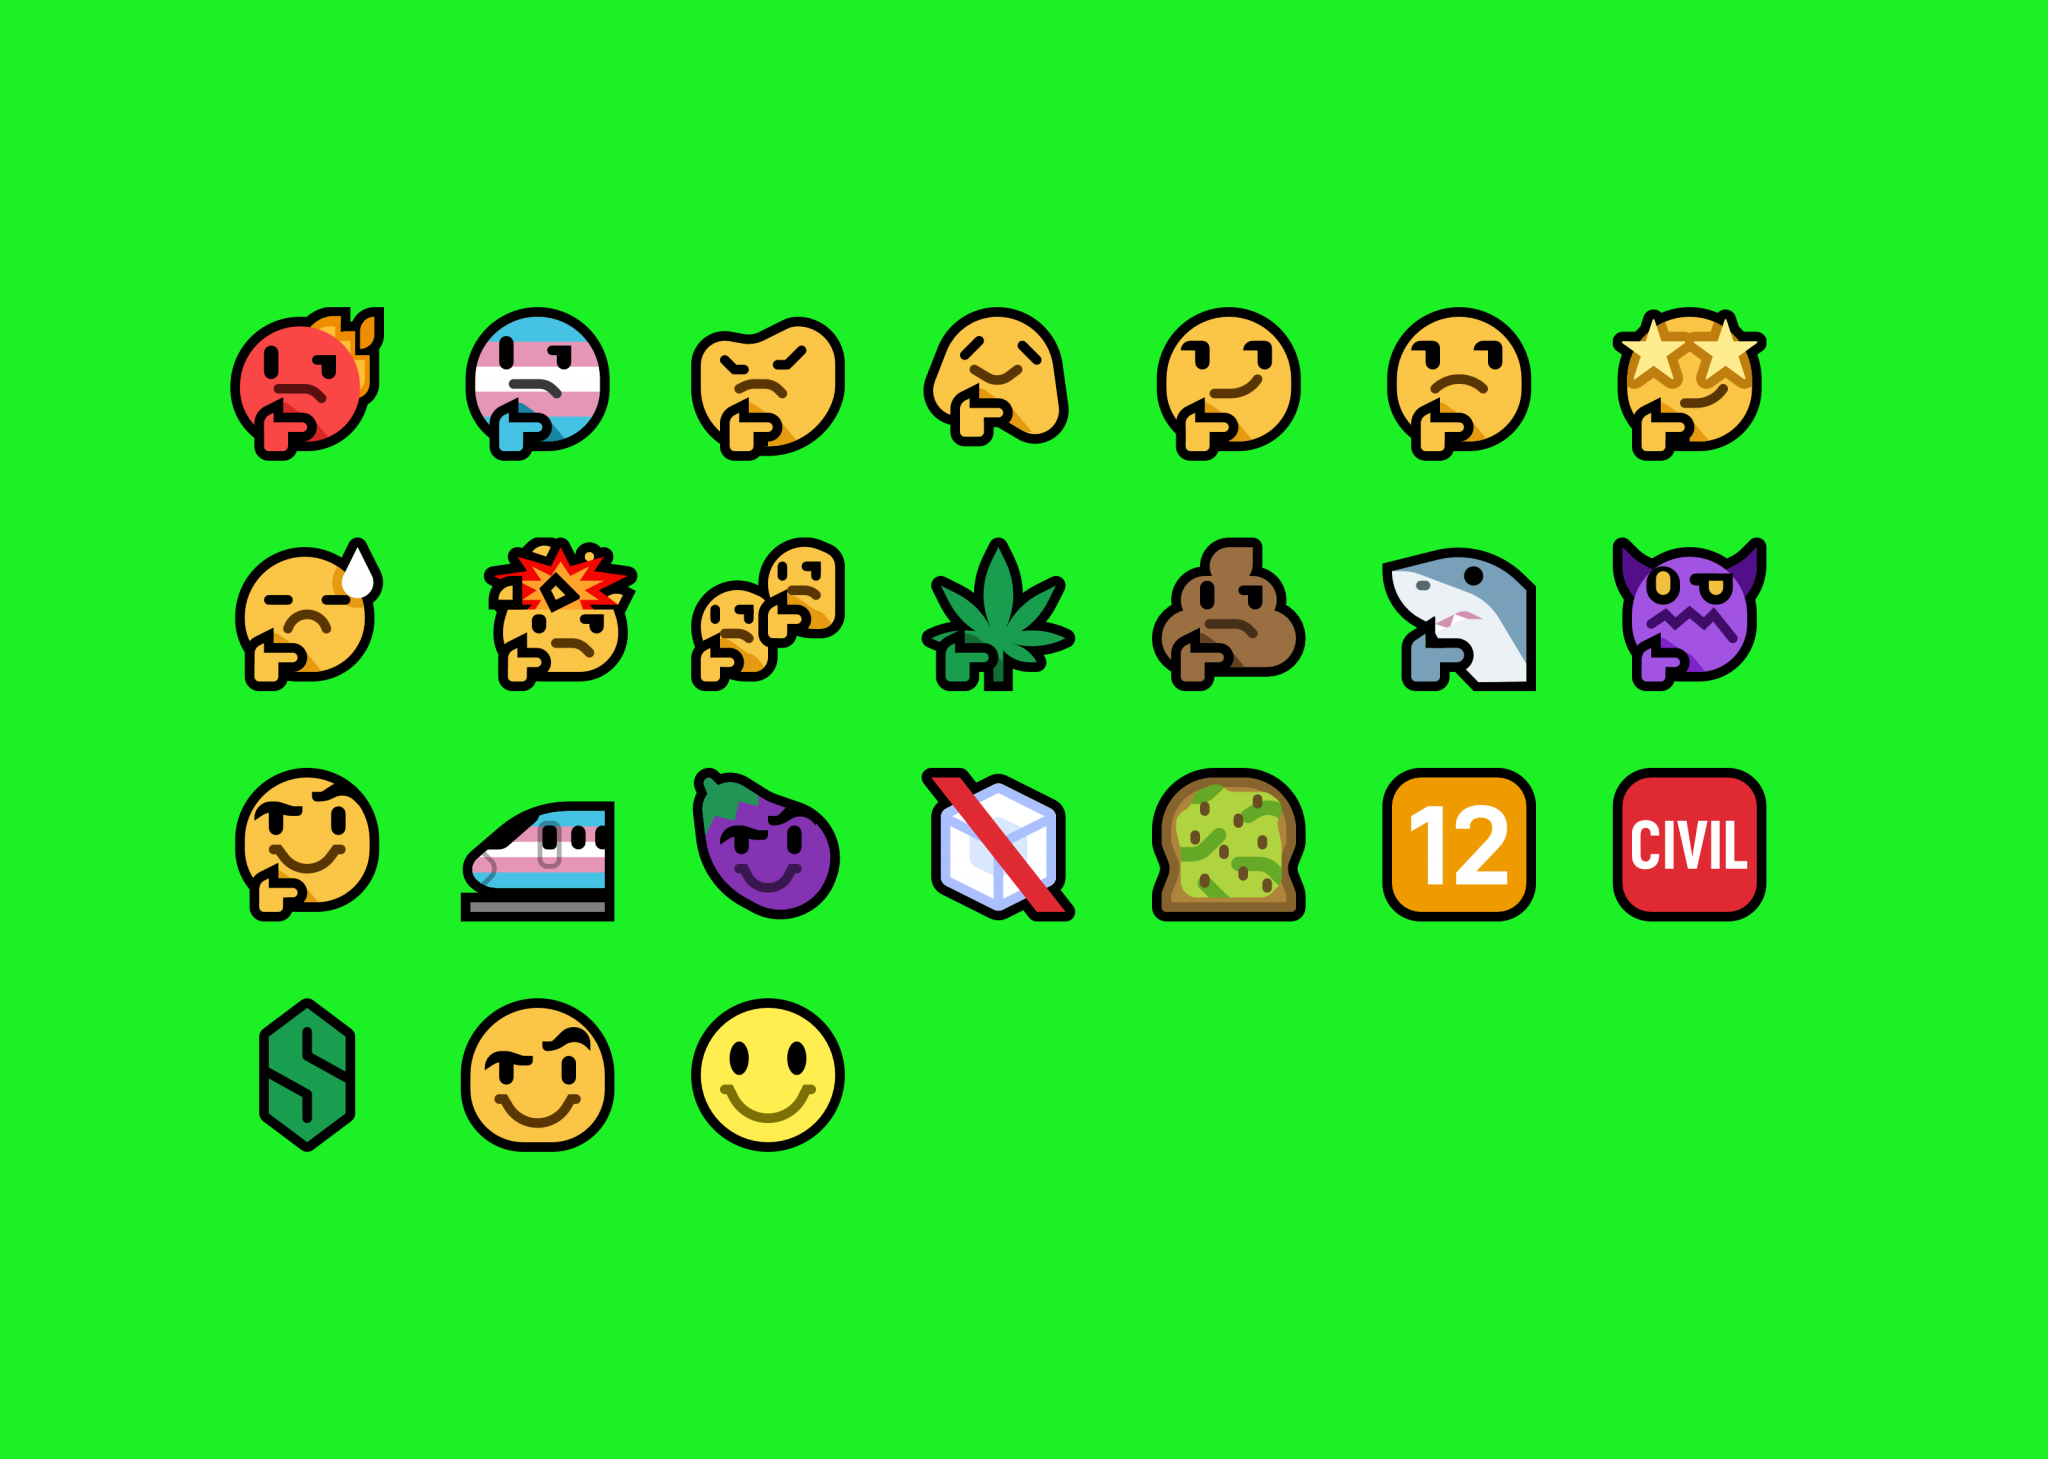 A grid of all of the emoji in Mutant Standard S2 on a bright green background.